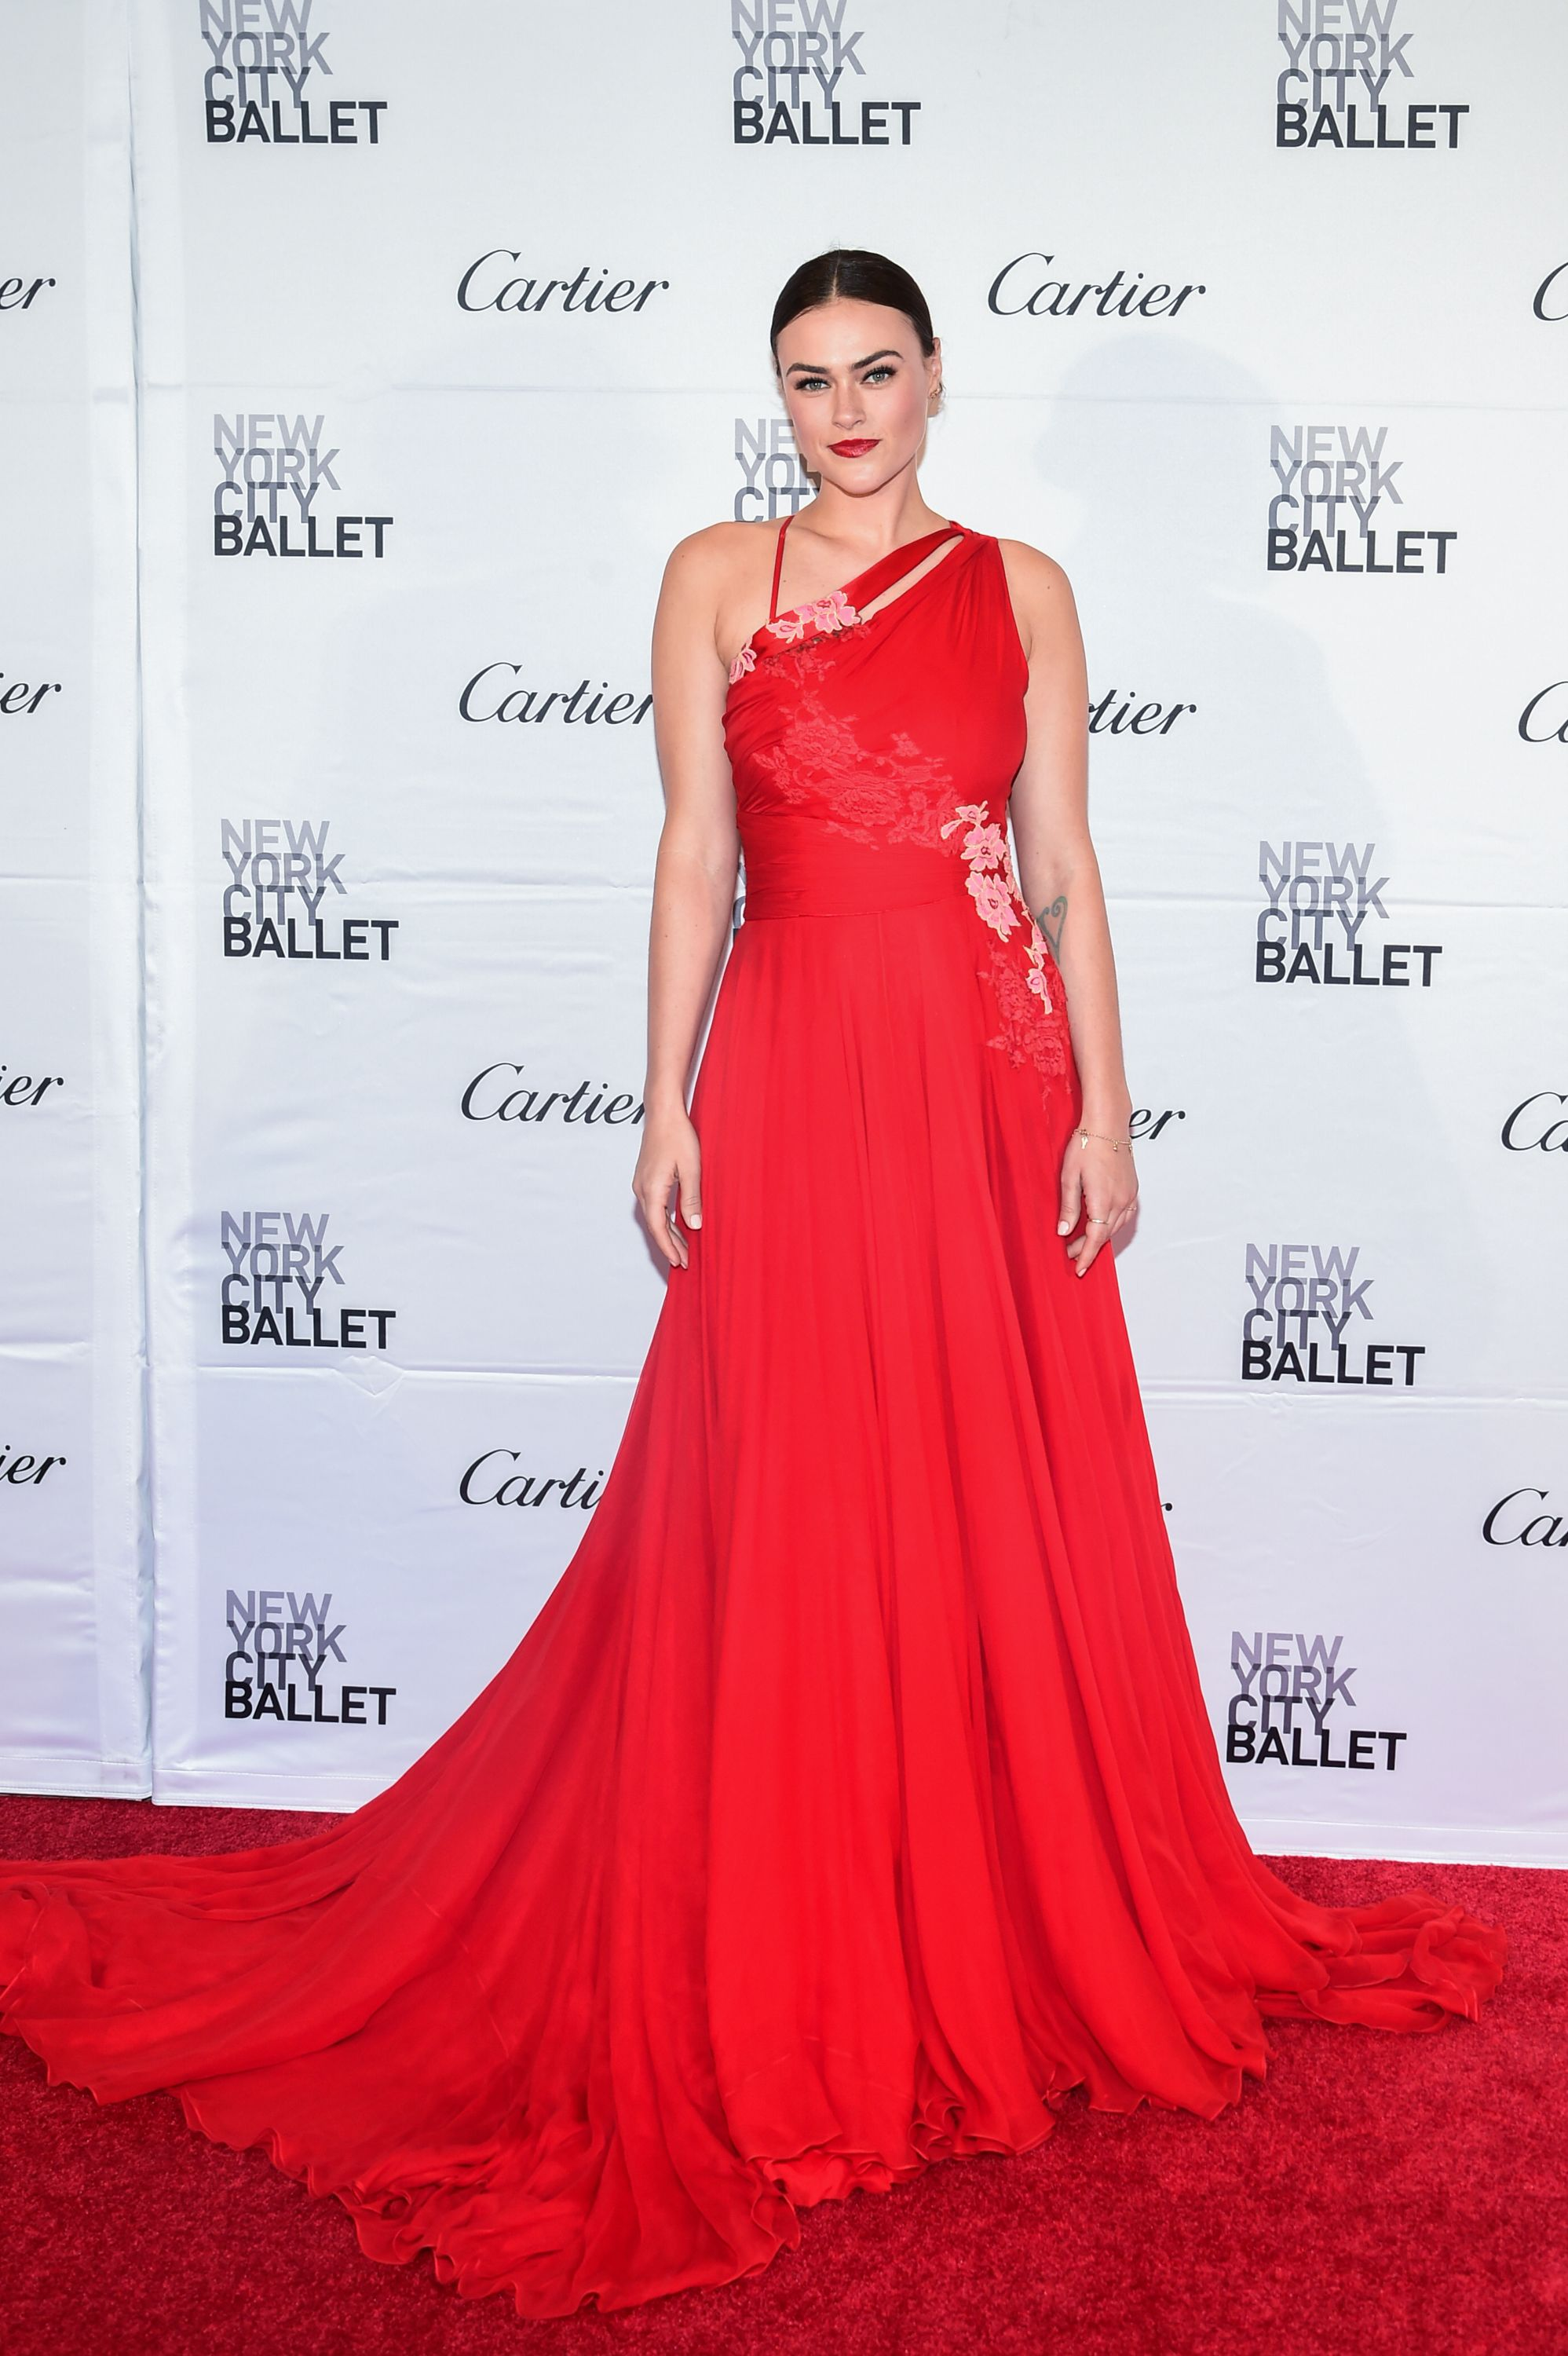 Model Myla Dalbesio attends the New York City Ballet 2017 Spring Gala